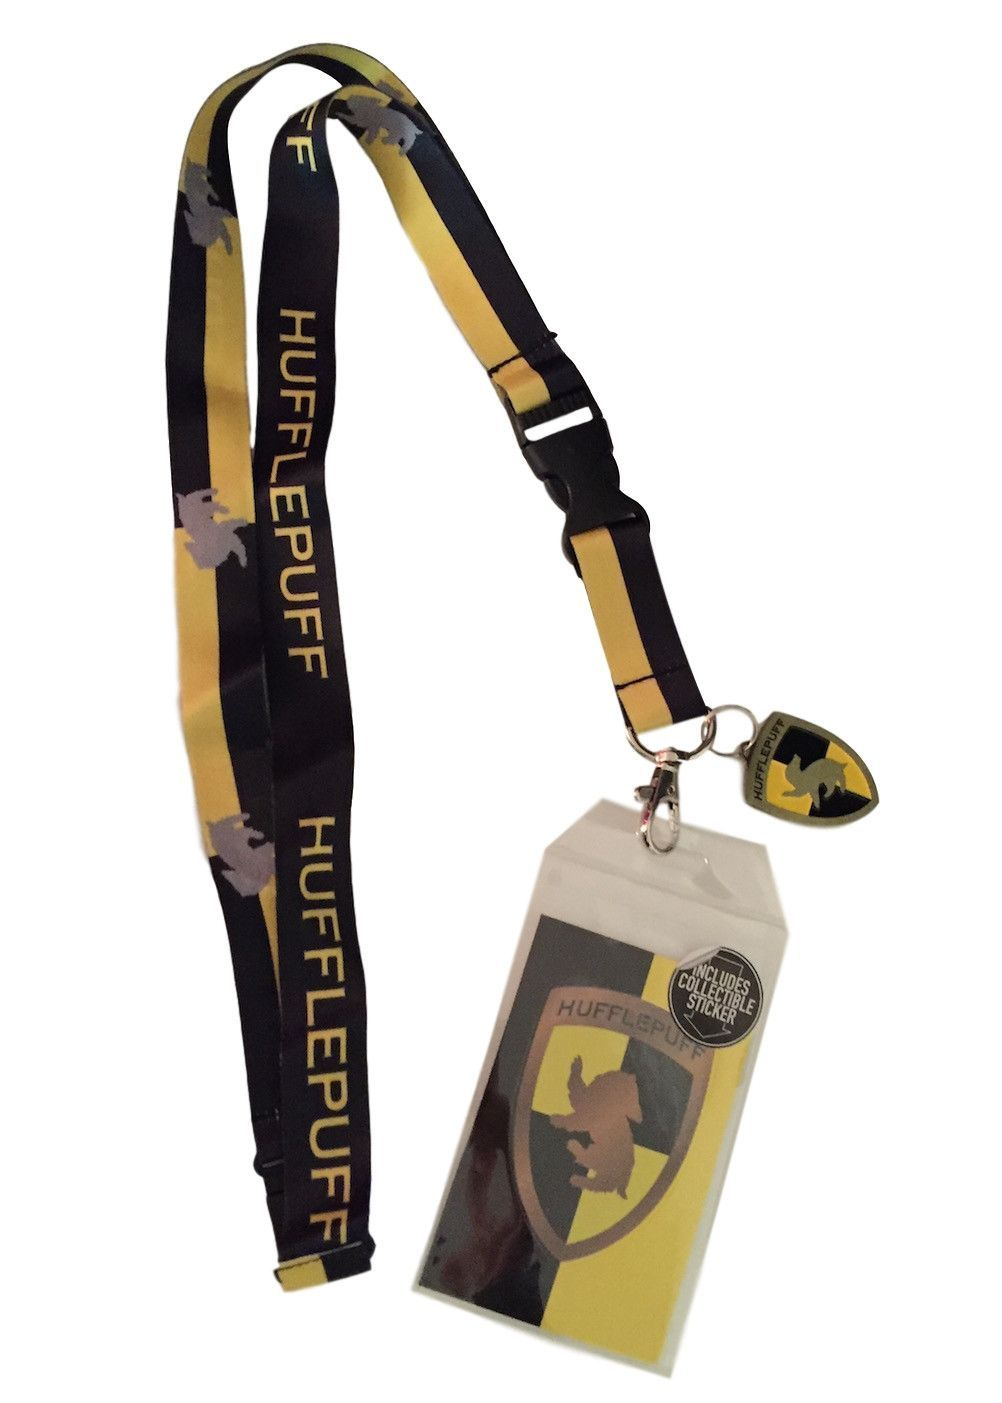 Harry Potter Hufflepuff Doublesided Lanyard Keychain ID Holder & Charm & Sticker